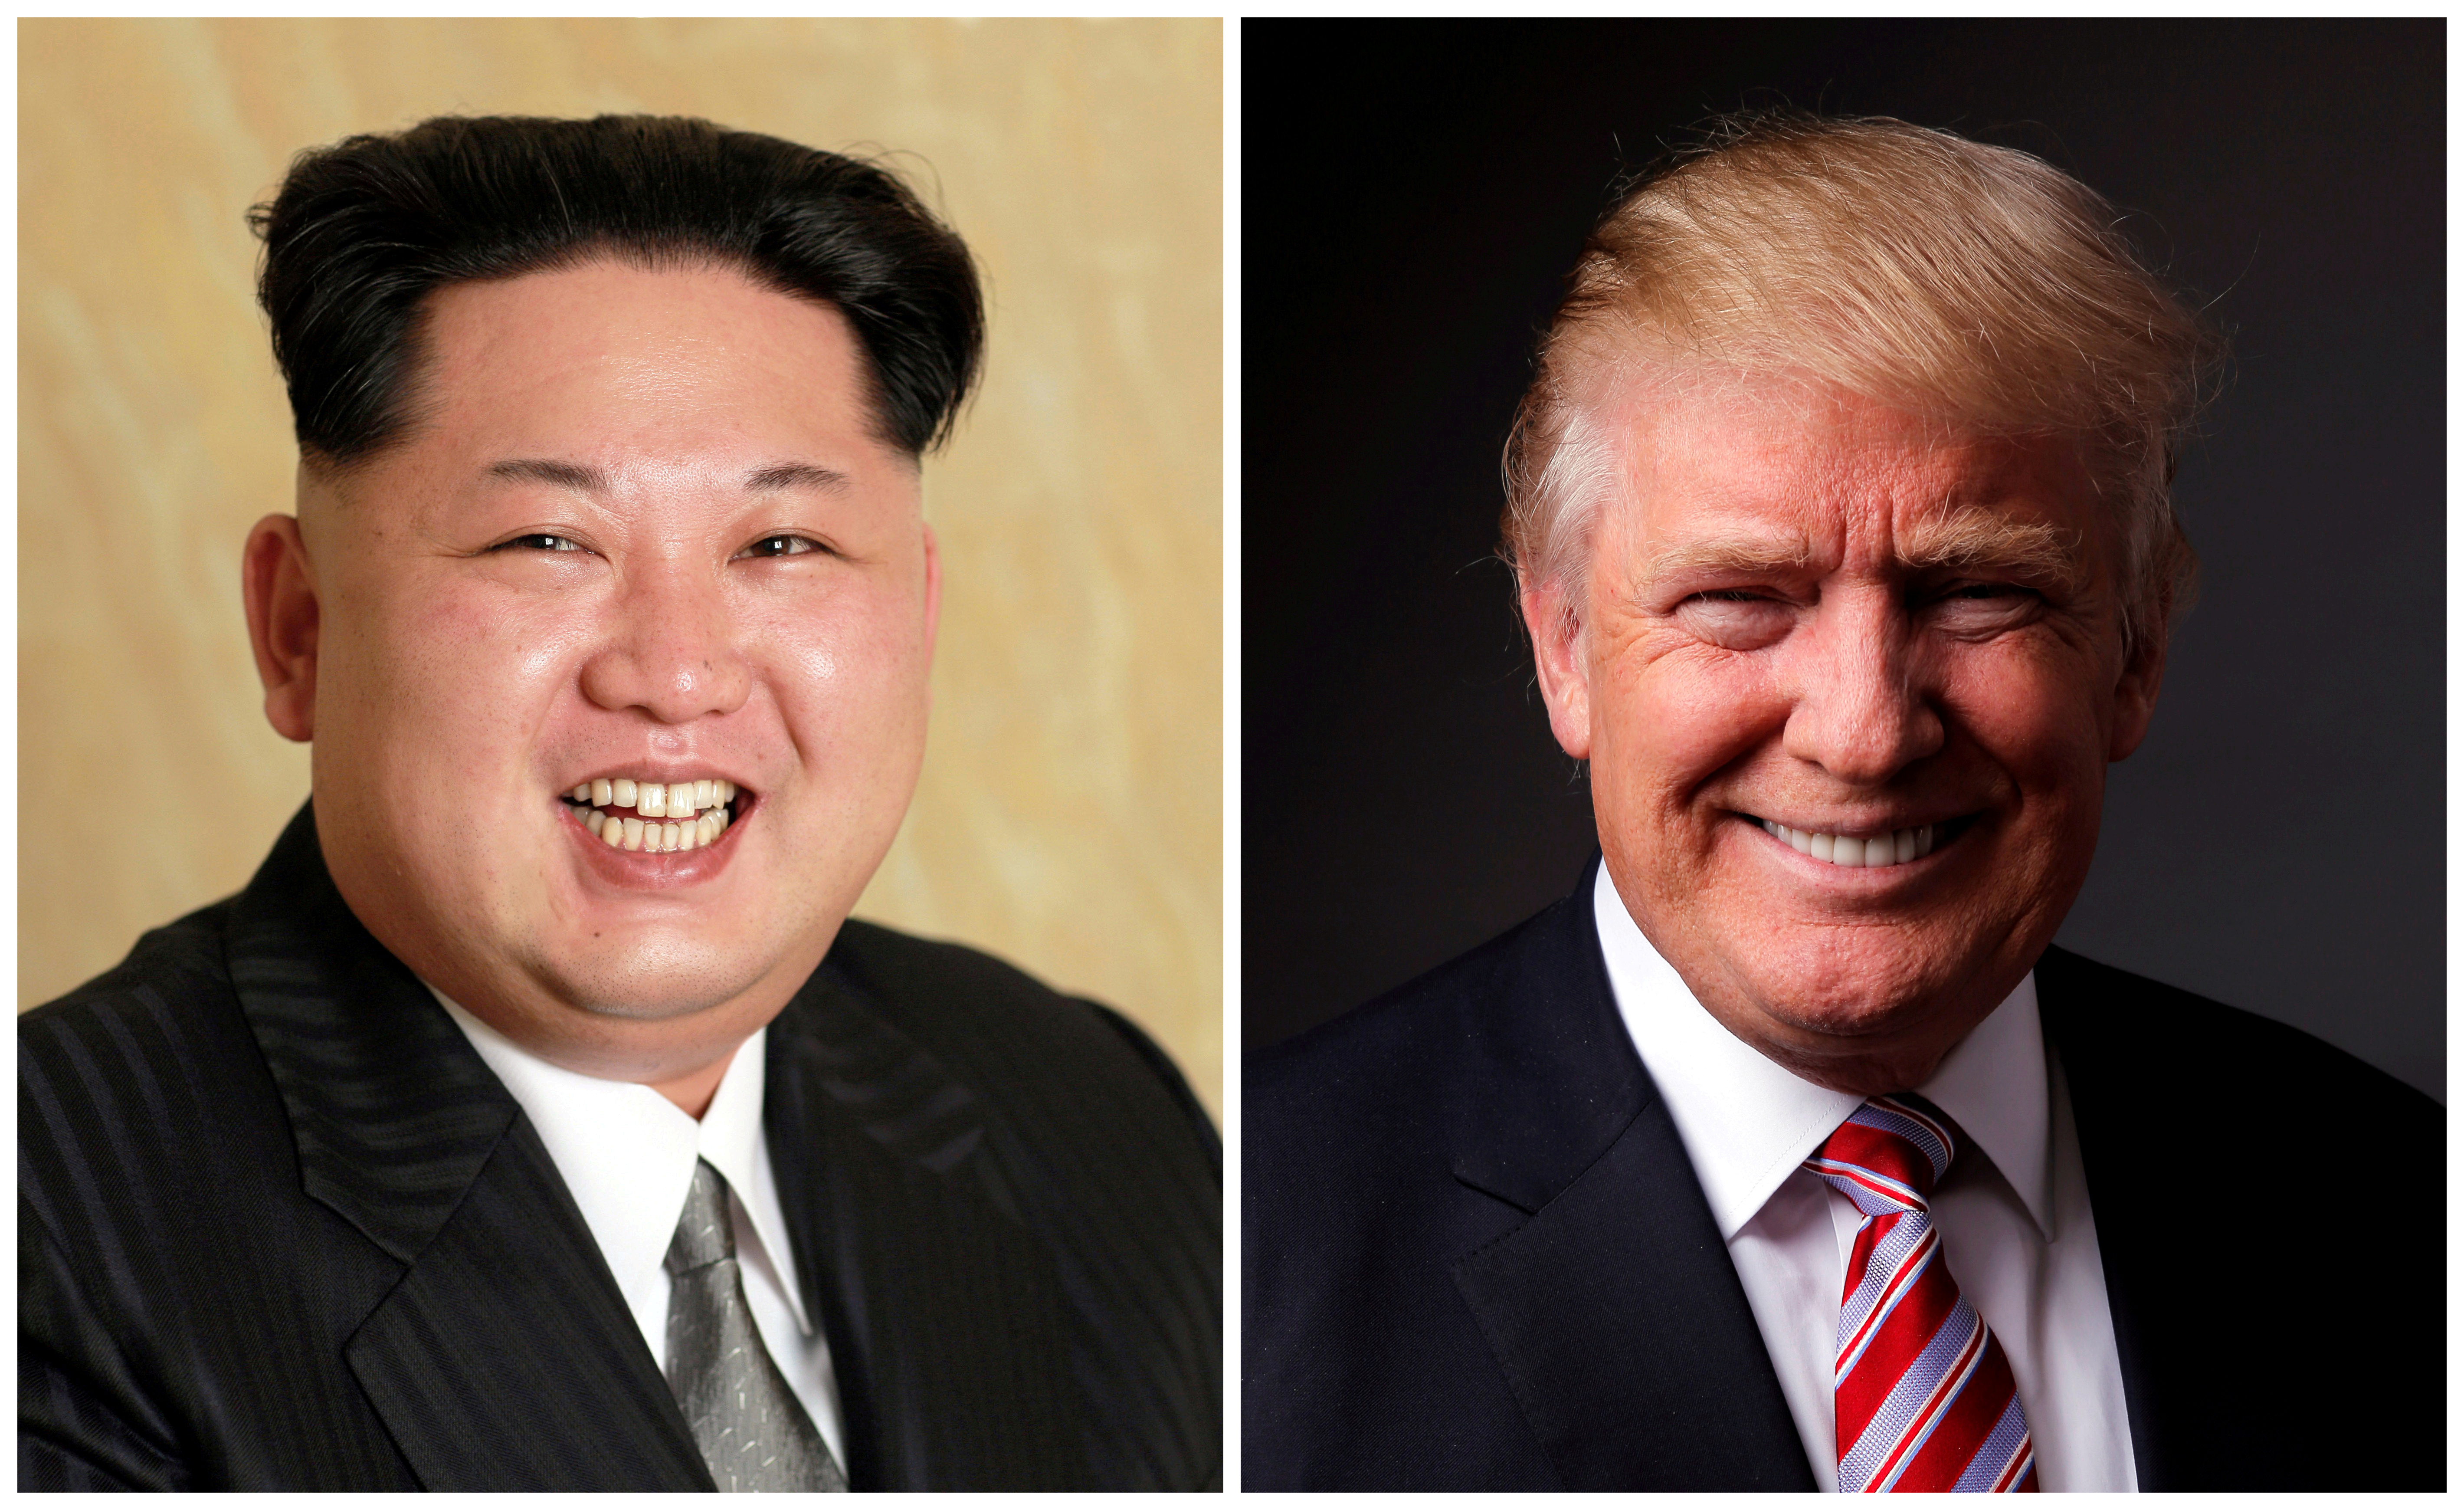 A combination photo shows a Korean Central News Agency (KCNA) handout of North Korean leader Kim Jong Un released on May 10, 2016, and Republican U.S. presidential candidate Donald Trump posing for a photo after an interview with Reuters in his office in Trump Tower, in the Manhattan borough of New York City, U.S., May 17, 2016. REUTERS/KCNA handout via Reuters/File Photo & REUTERS/Lucas Jackson/File Photo ATTENTION EDITORS - THE KCNA IMAGE WAS PROVIDED BY A THIRD PARTY. EDITORIAL USE ONLY. REUTERS IS UNABLE TO INDEPENDENTLY VERIFY THIS IMAGE. NO THIRD PARTY SALES. NOT FOR USE BY REUTERS THIRD PARTY DISTRIBUTORS. SOUTH KOREA OUT. NO COMMERCIAL OR EDITORIAL SALES IN SOUTH KOREA. - S1BETHIZBJAA